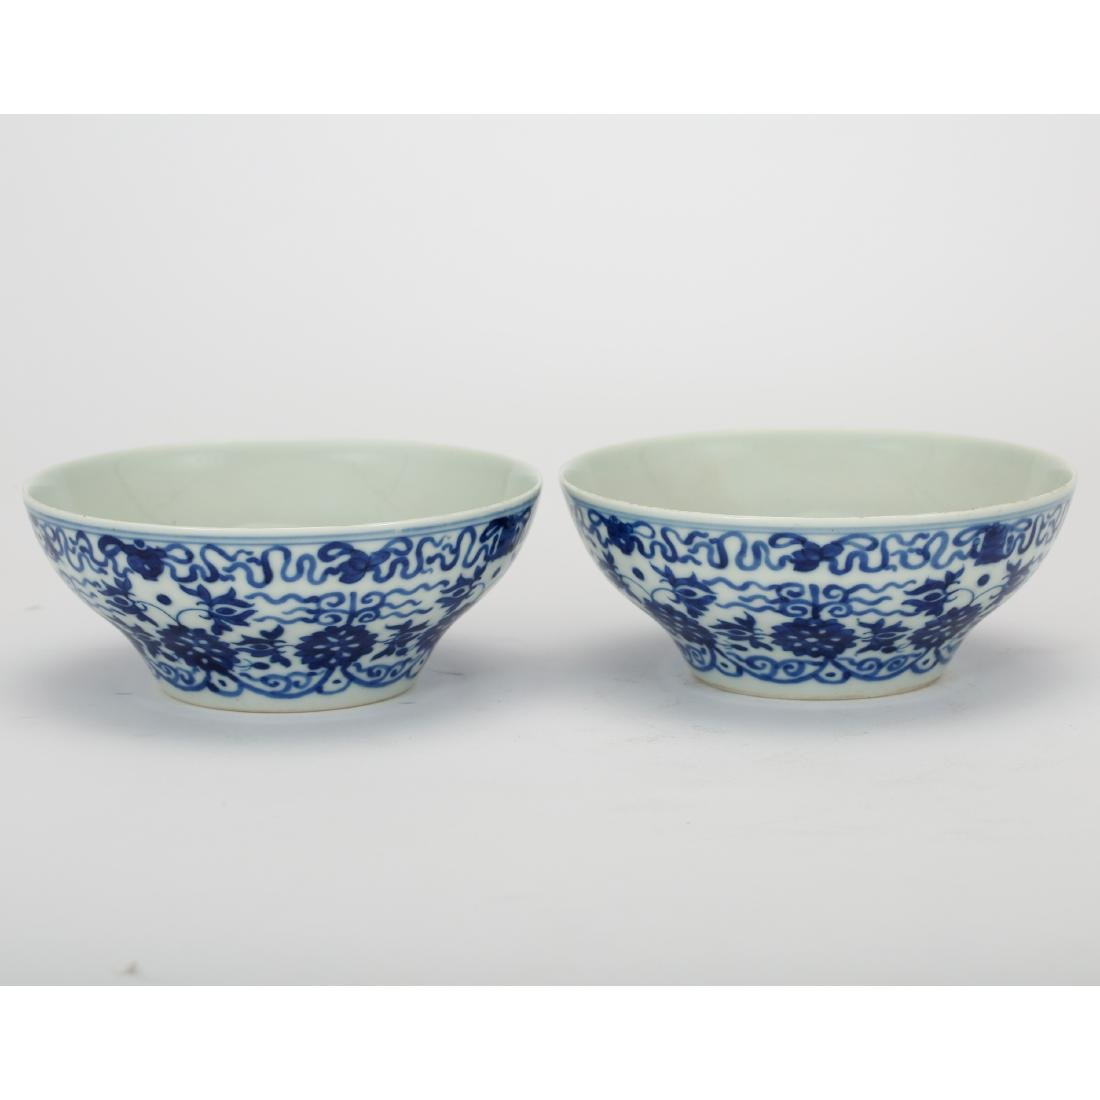 CHINESE PAIR OF BLUE AND WHITE PORCELAIN BOWLS